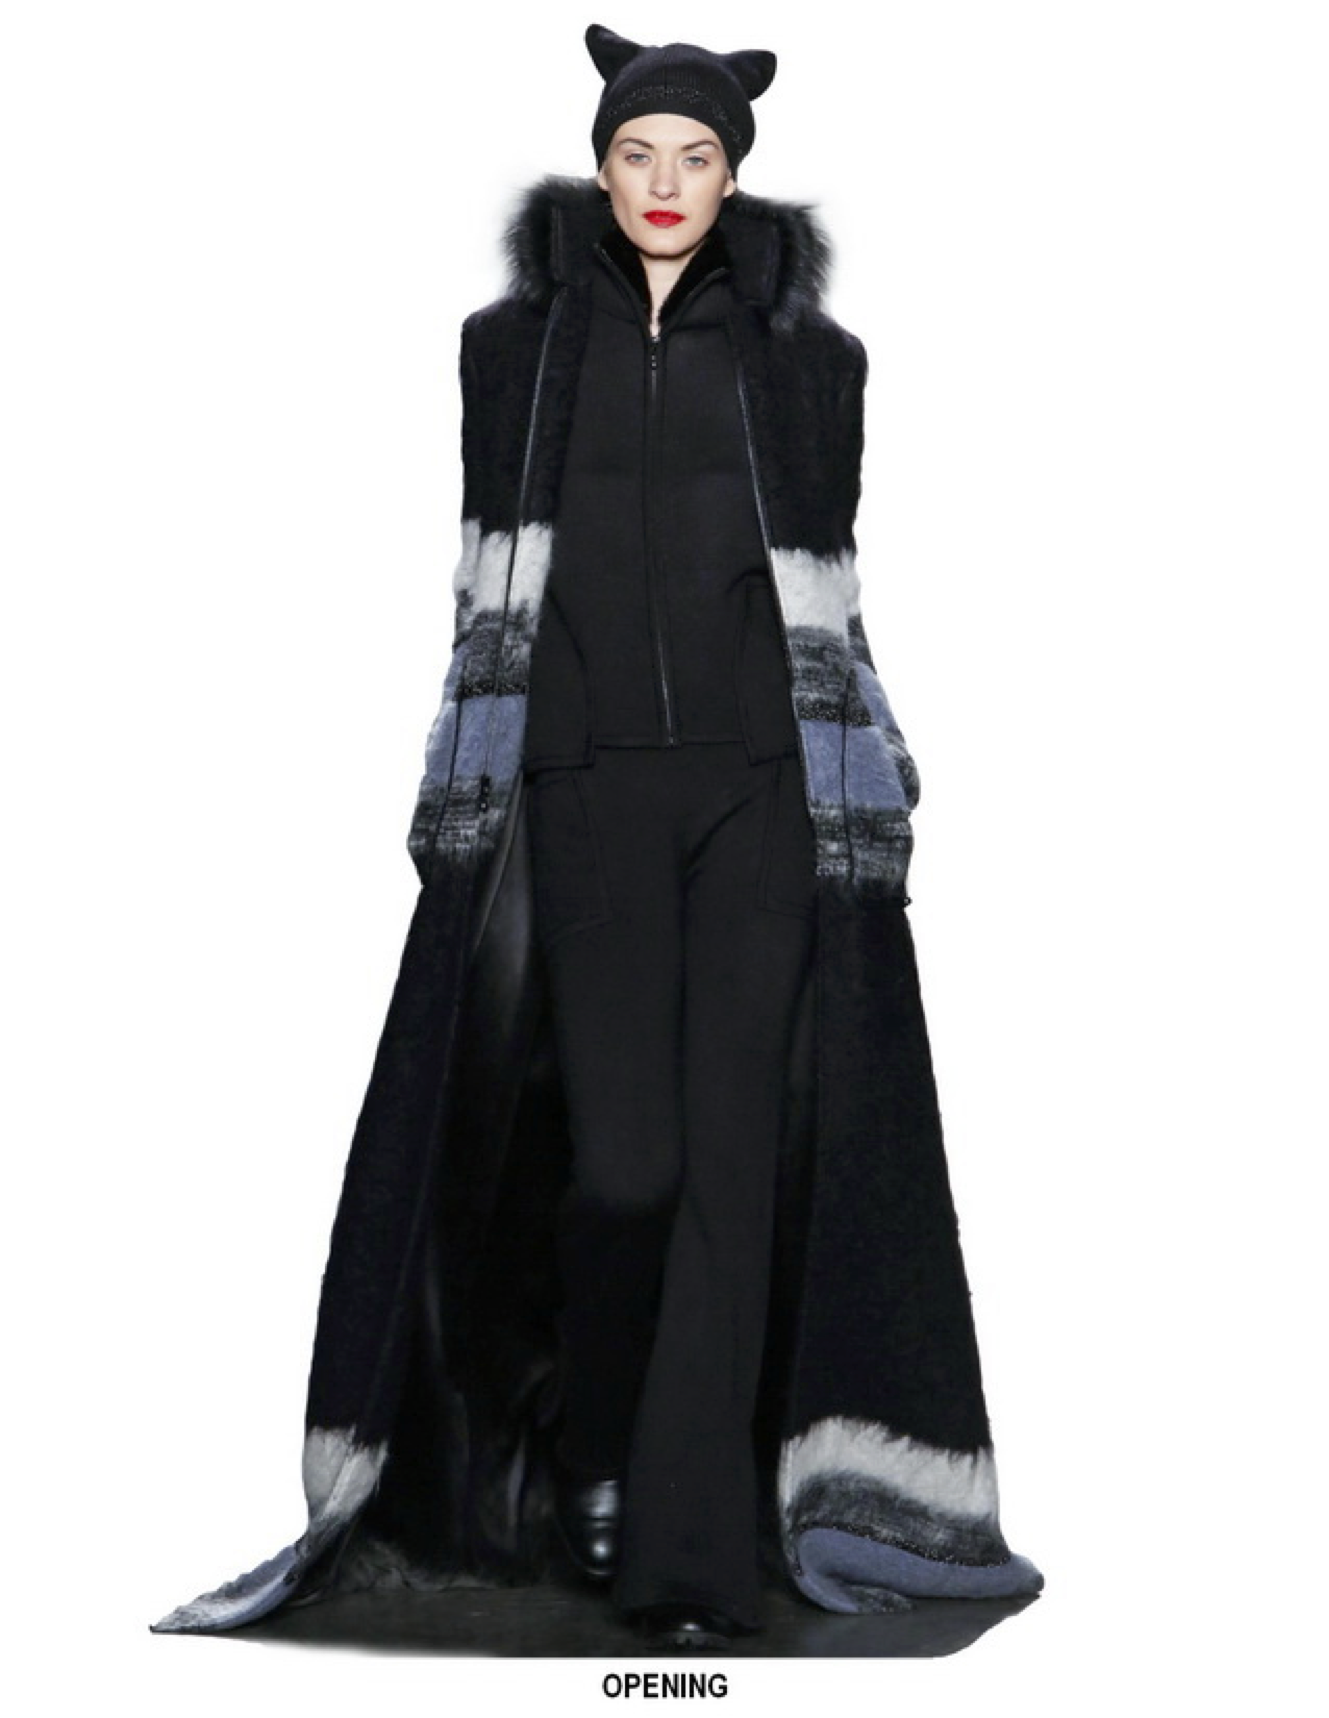 Zang_Toi_Fall_2016_Look_Book-2 (dragged).png